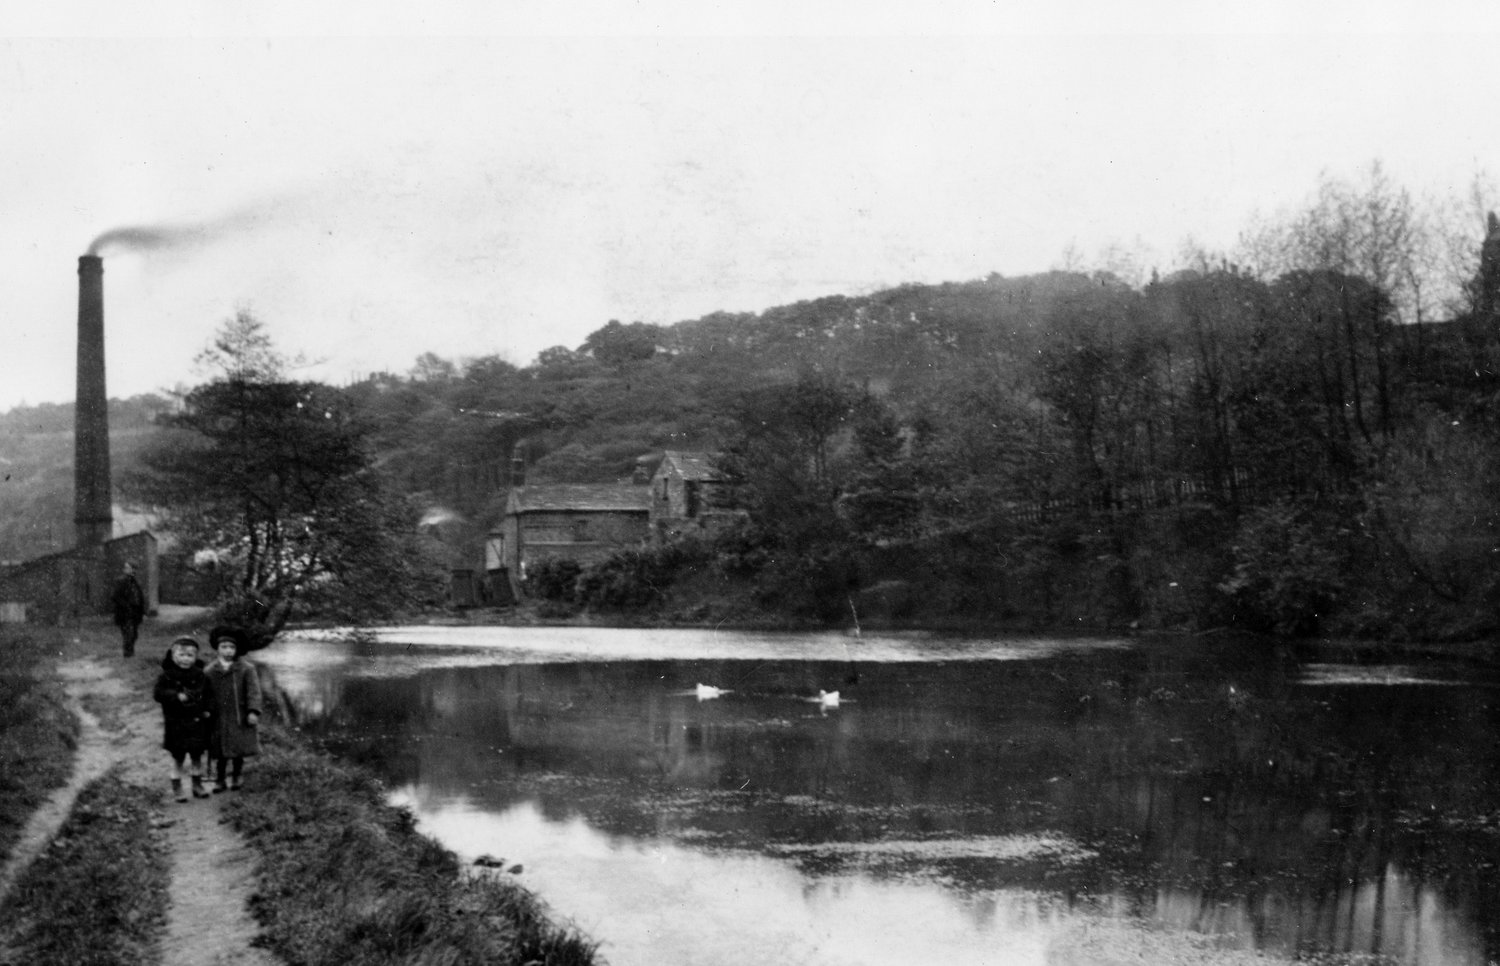 20  Mill Pond, Woodland Dye Works (formerly Old Oil Mill) (demolished), 1910